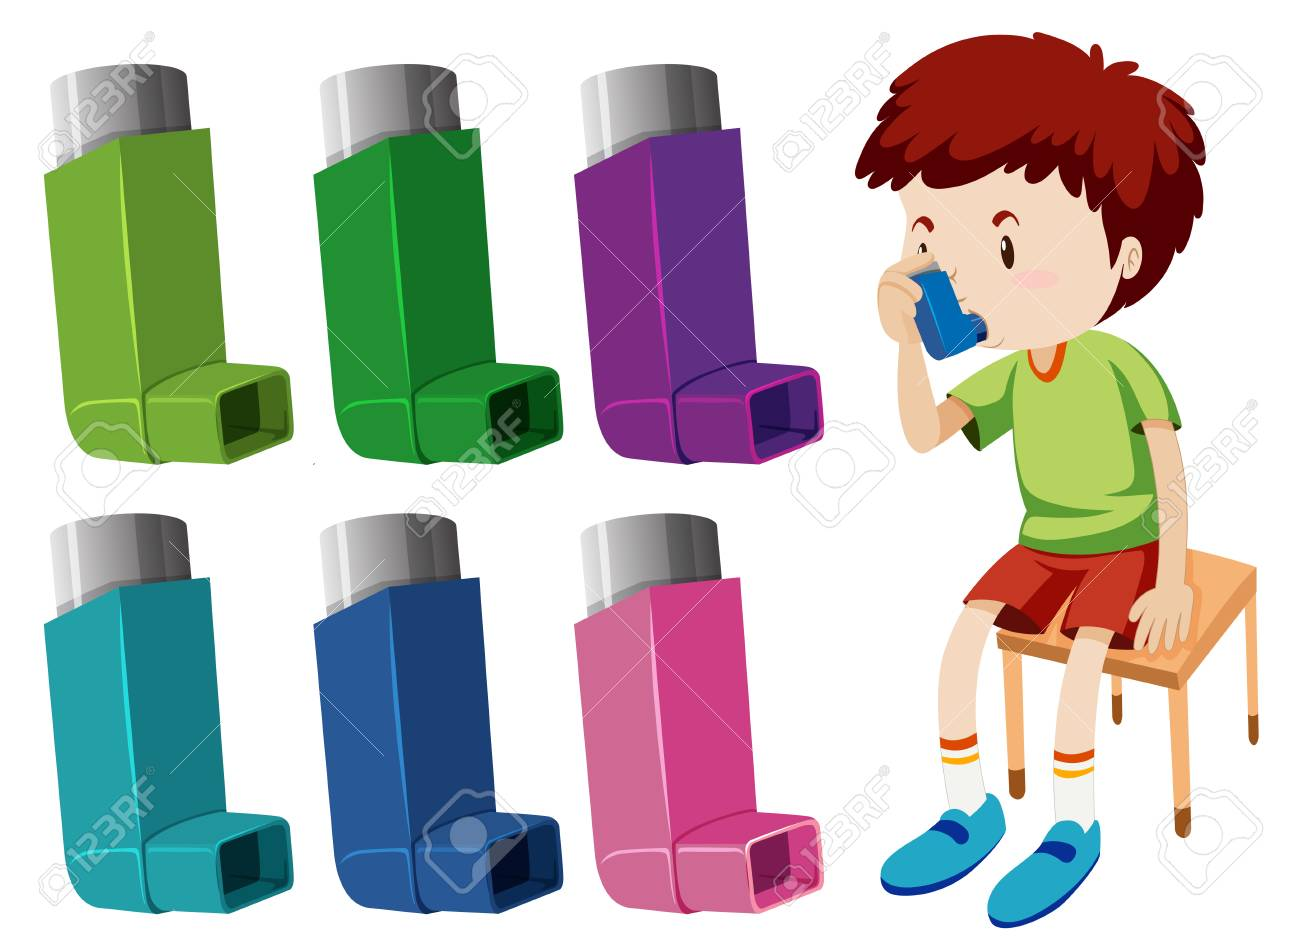 Boy with asthma with different asthma inhalers illustration - 102127121